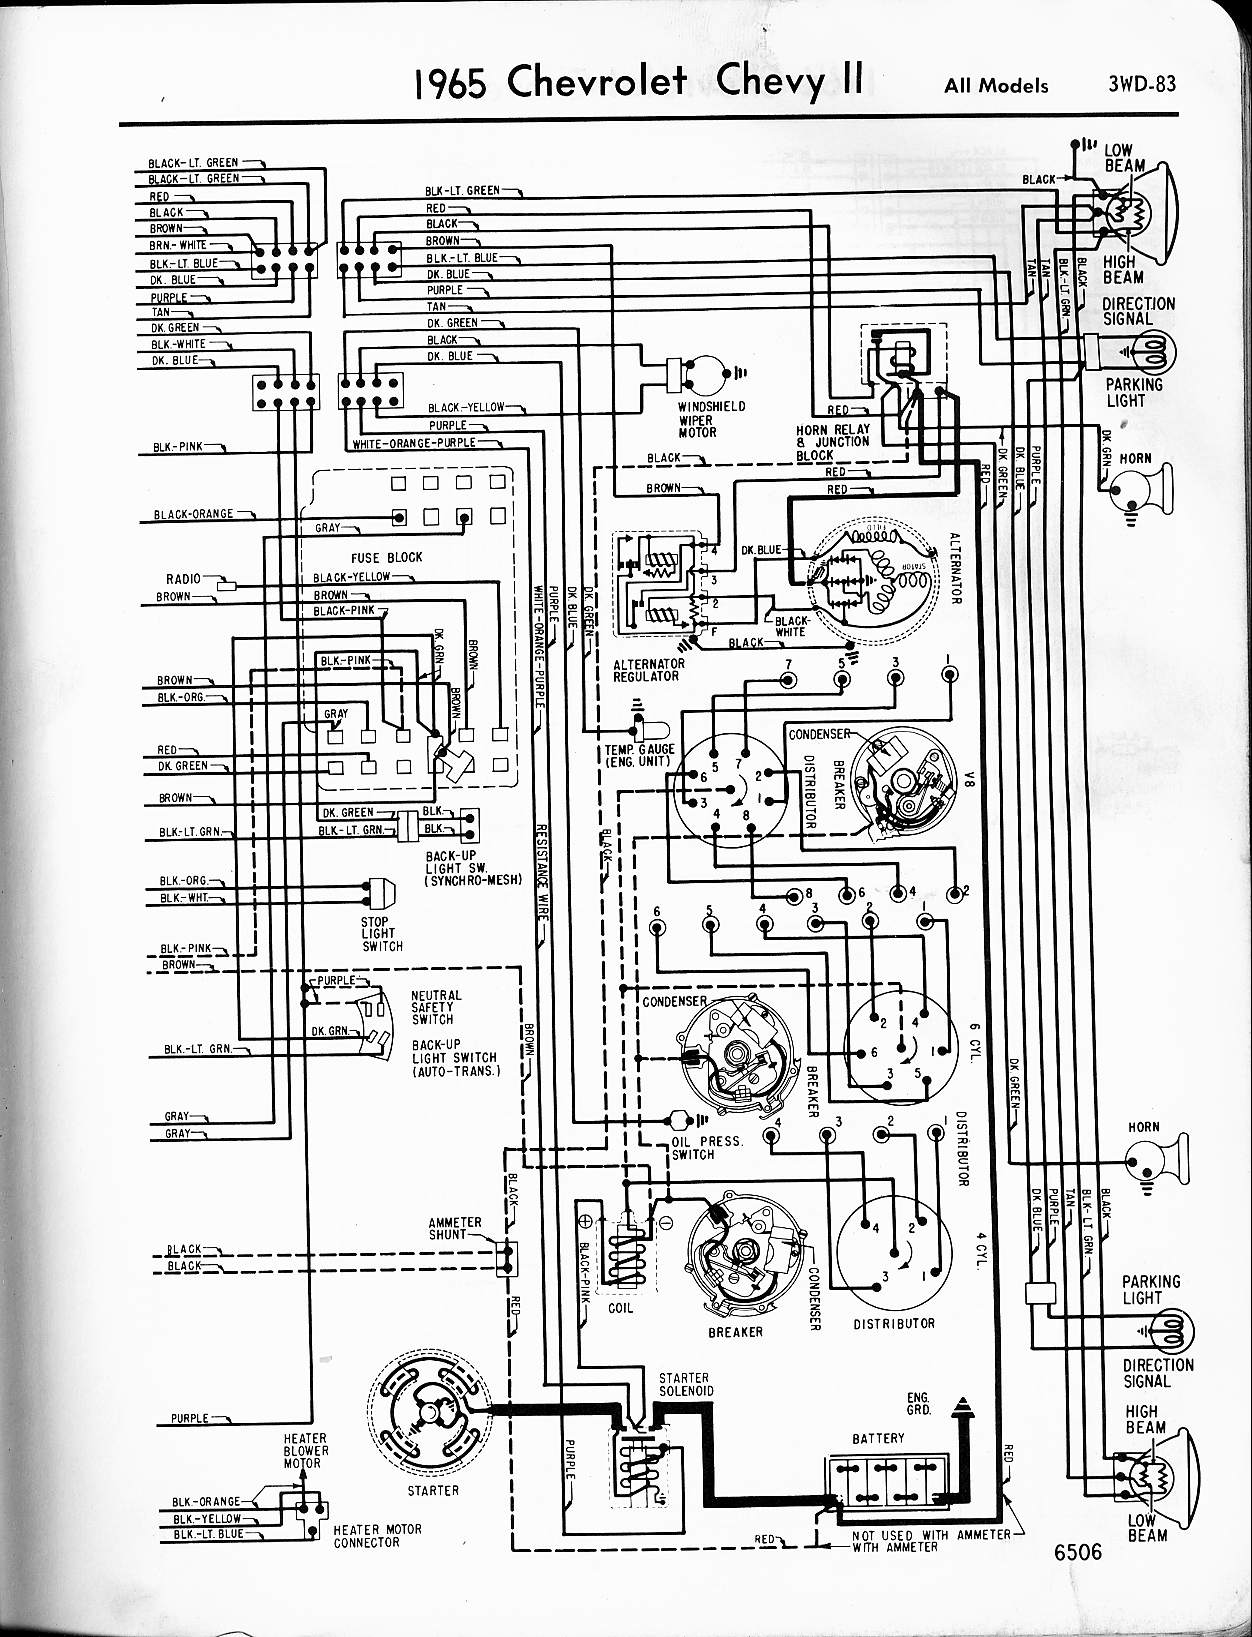 68 Gm Ignition Wire Diagram - Wiring Diagram Schematic Name  Chevelle Wiring Diagram Key on 1970 chevelle air cleaner, 1970 chevelle alternator, 1967 chevelle horn diagram, 1970 chevelle clock, 1970 chevelle lights, 1970 chevelle neutral safety switch, 1970 chevelle crankshaft, 1970 chevelle cowl induction relay location, 1970 chevelle carburetor, 1970 chevelle oil sending unit, 1970 chevelle air conditioning, 1970 chevelle tires, 1970 chevelle wiring blueprints, 1970 chevelle fuel gauge wiring, 1970 chevelle transmission, 1970 chevelle schematics, 1970 chevelle ss fender emblem location, 1970 chevelle wiring harness, chevelle ac diagram, 67 chevelle horn diagram,